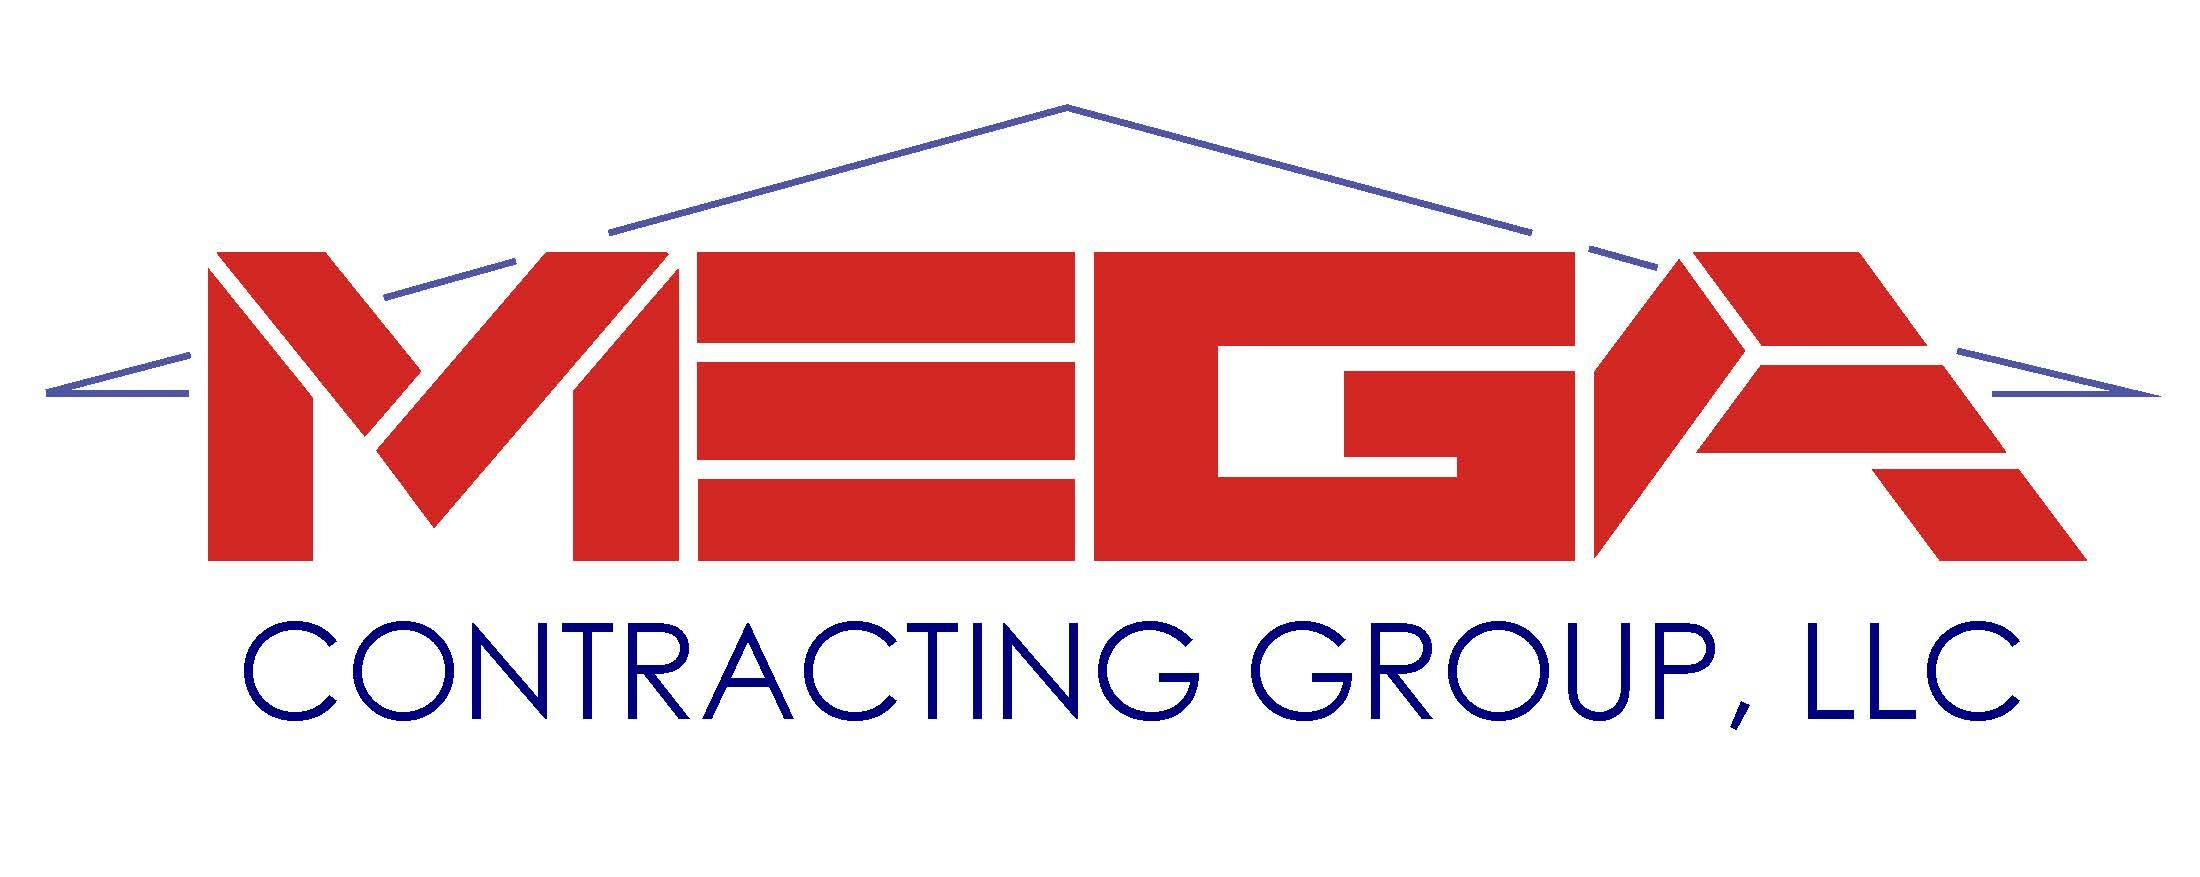 1_MEGA_CONTRACTING_LLC_.JPG